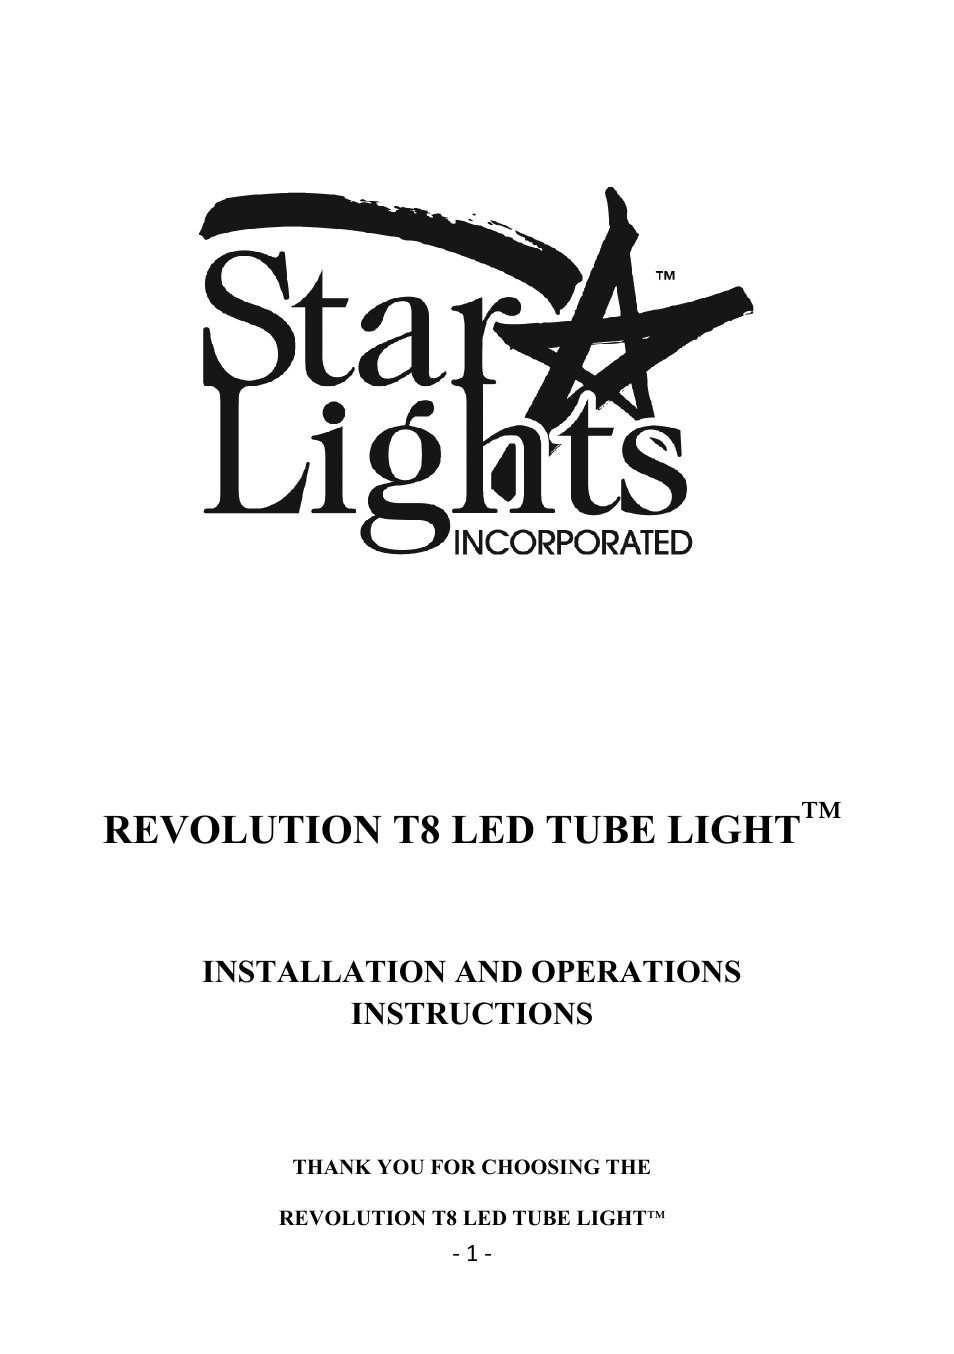 Star lights revolution t8 18 user manual 5 pages publicscrutiny Choice Image